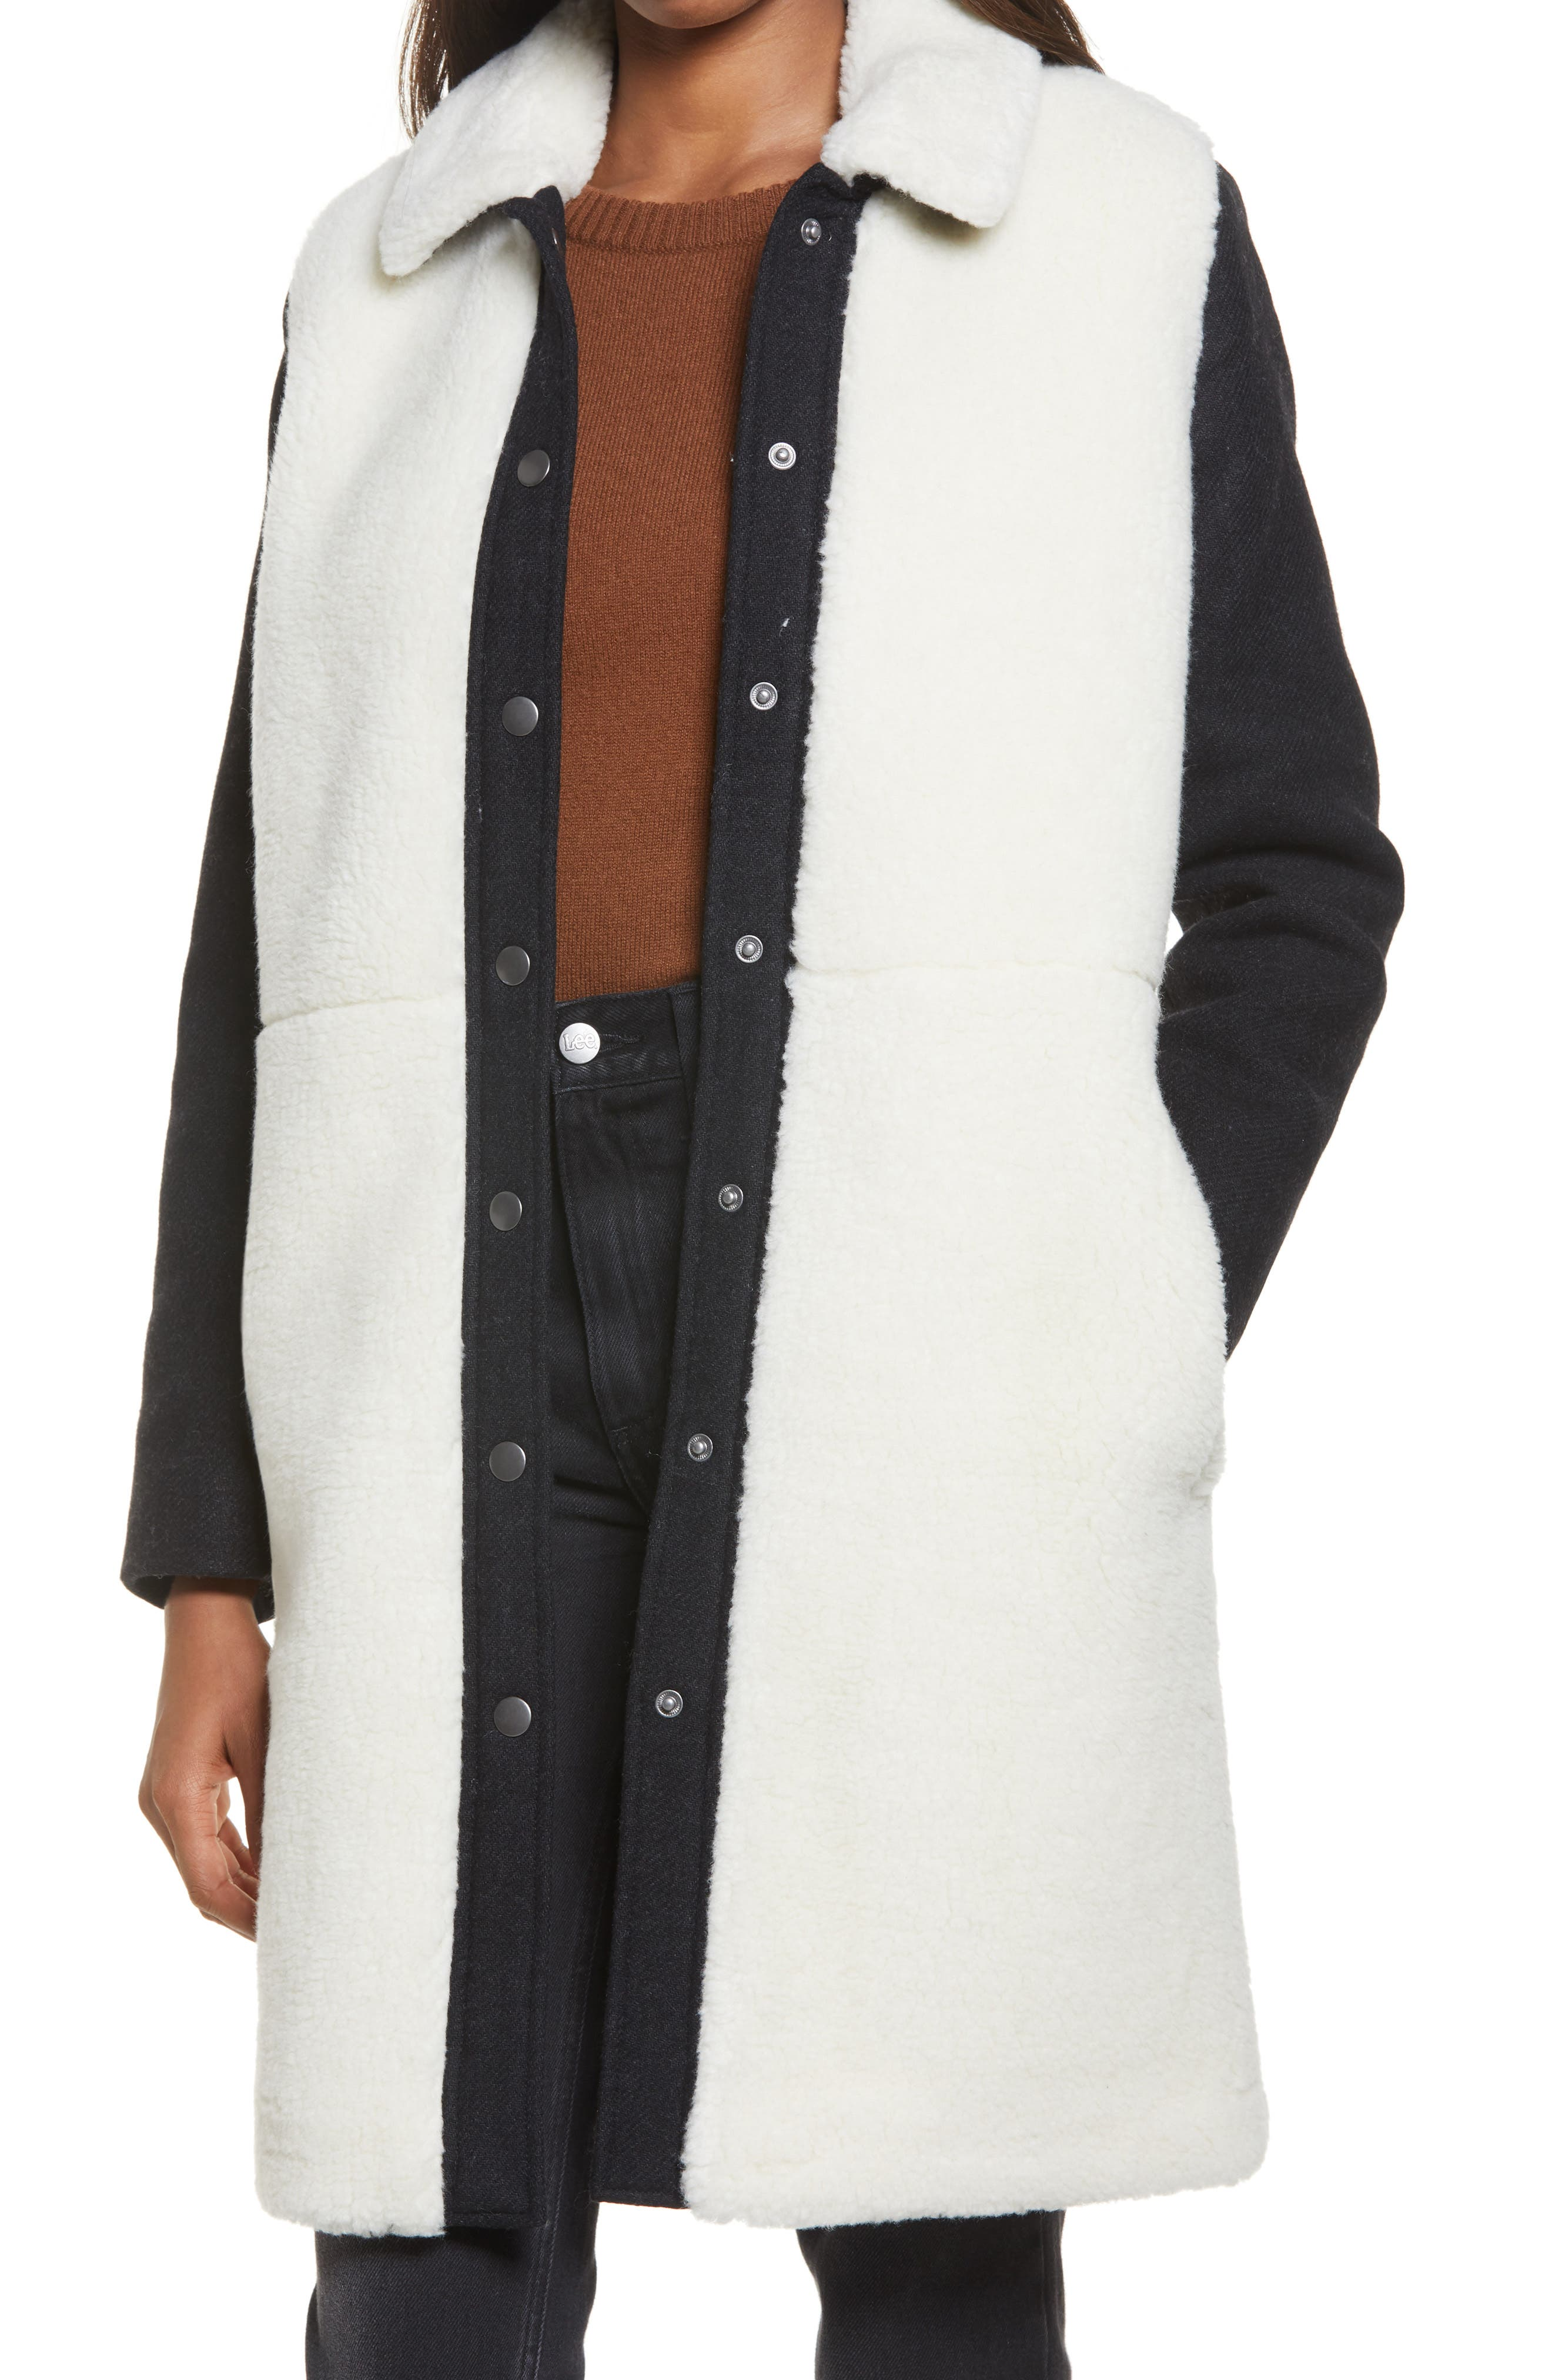 Madewell McClancy Faux Shearling Coat | Nordstrom